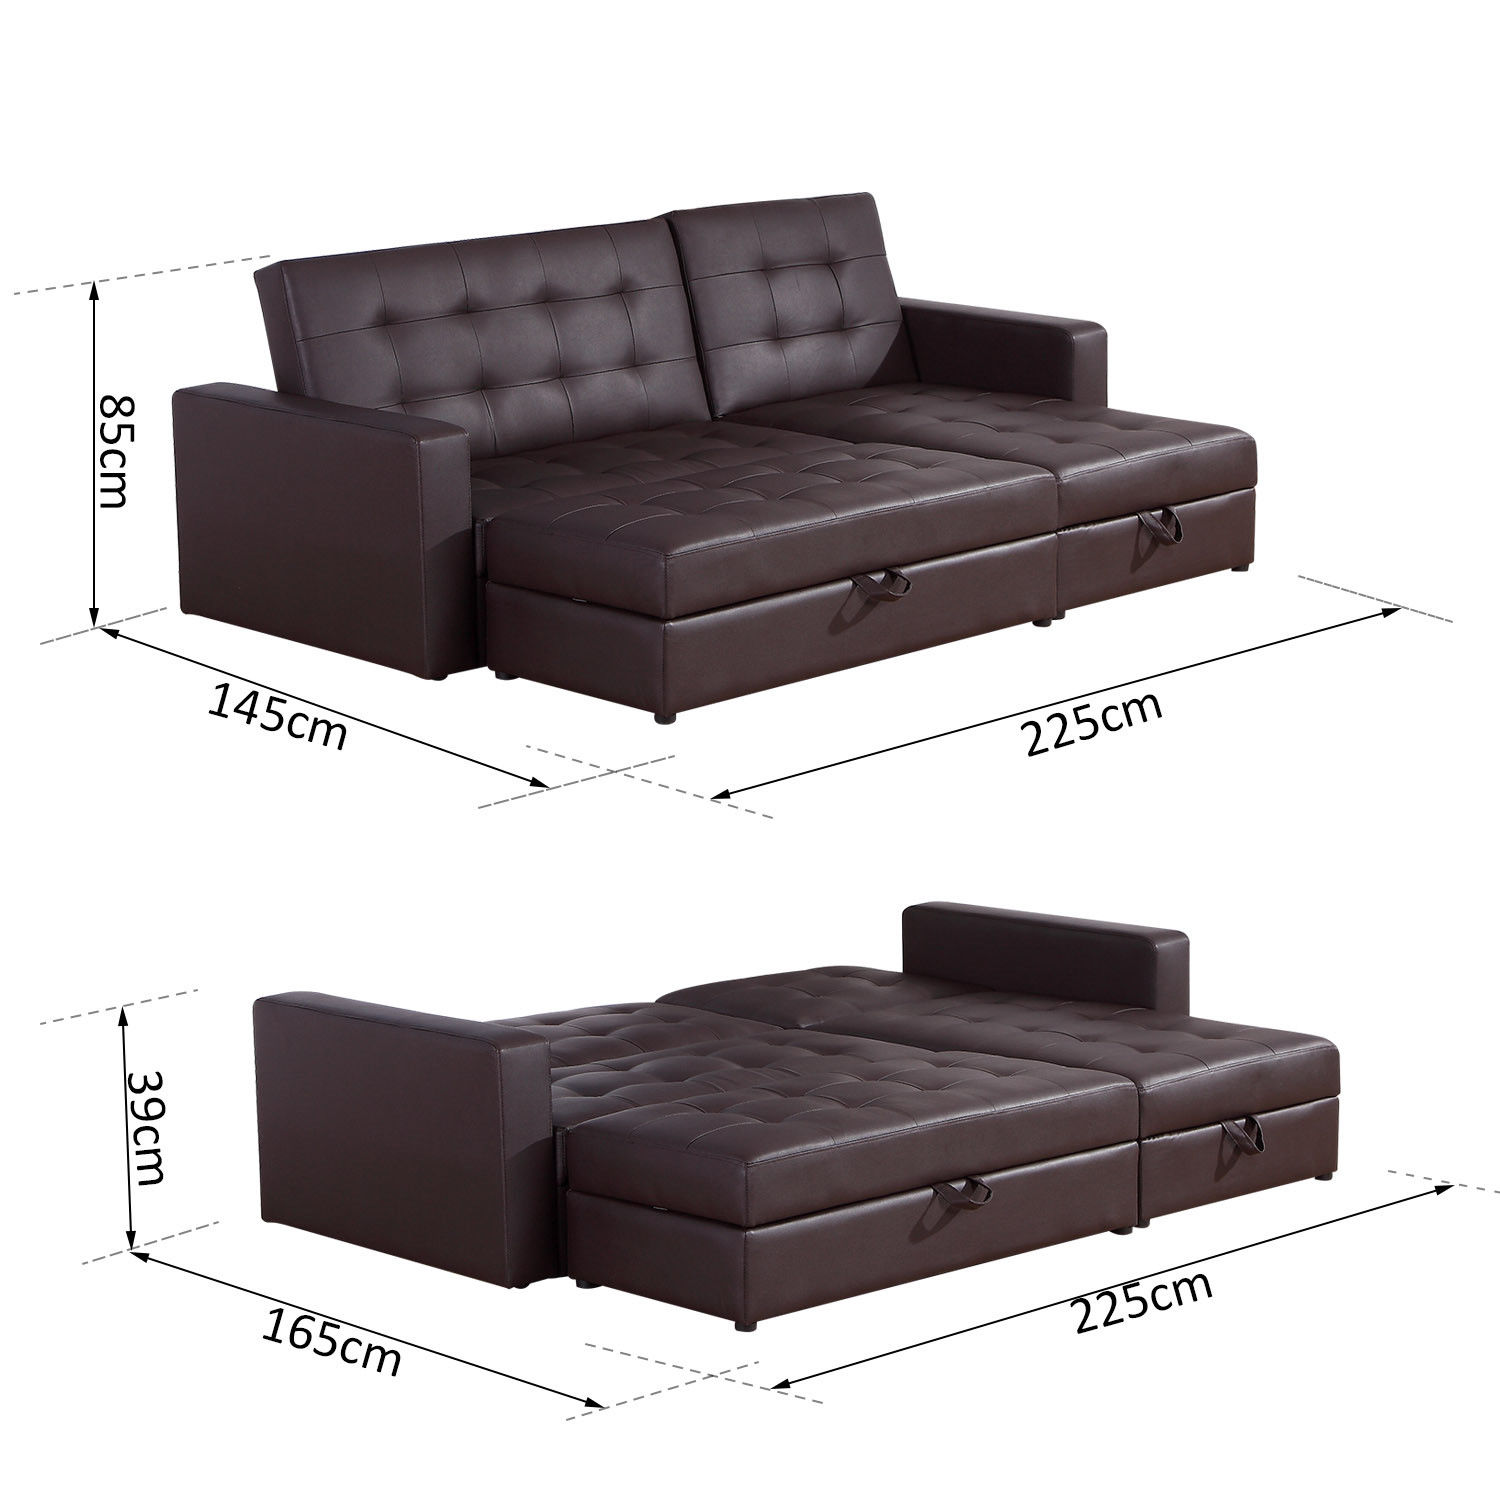 Sofa Bed With Chaise: Sofa Bed Storage Sleeper Chaise Loveseat Couch Sectional